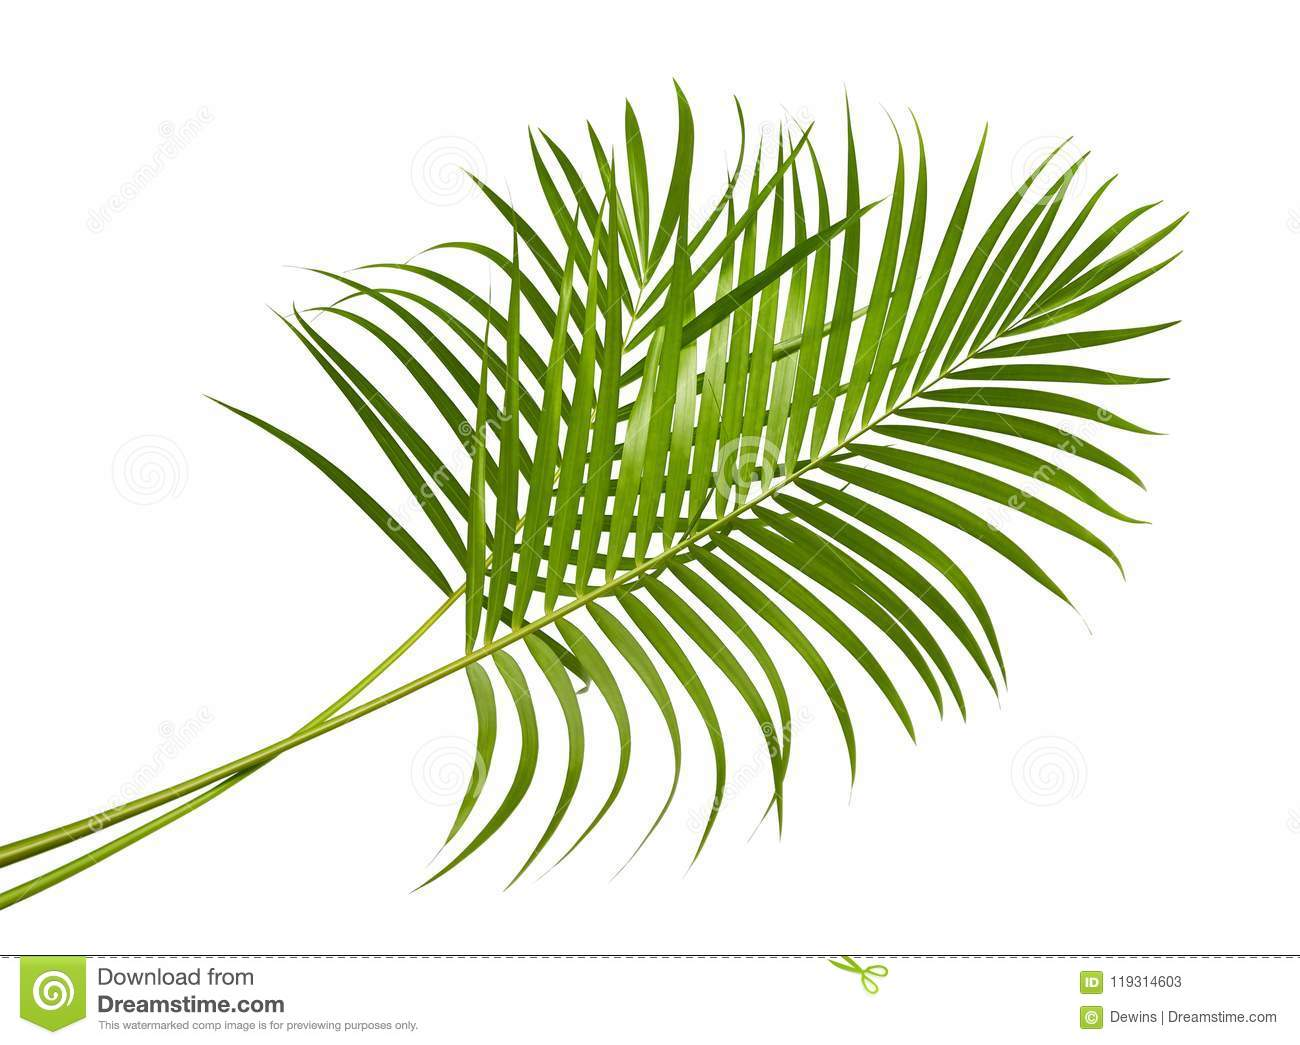 Yellow Palm Leaves Dypsis Lutescens Or Golden Cane Palm Areca Palm Leaves Tropical Foliage Isolated On White Background Stock Image Image Of Botanic Frond 119314603